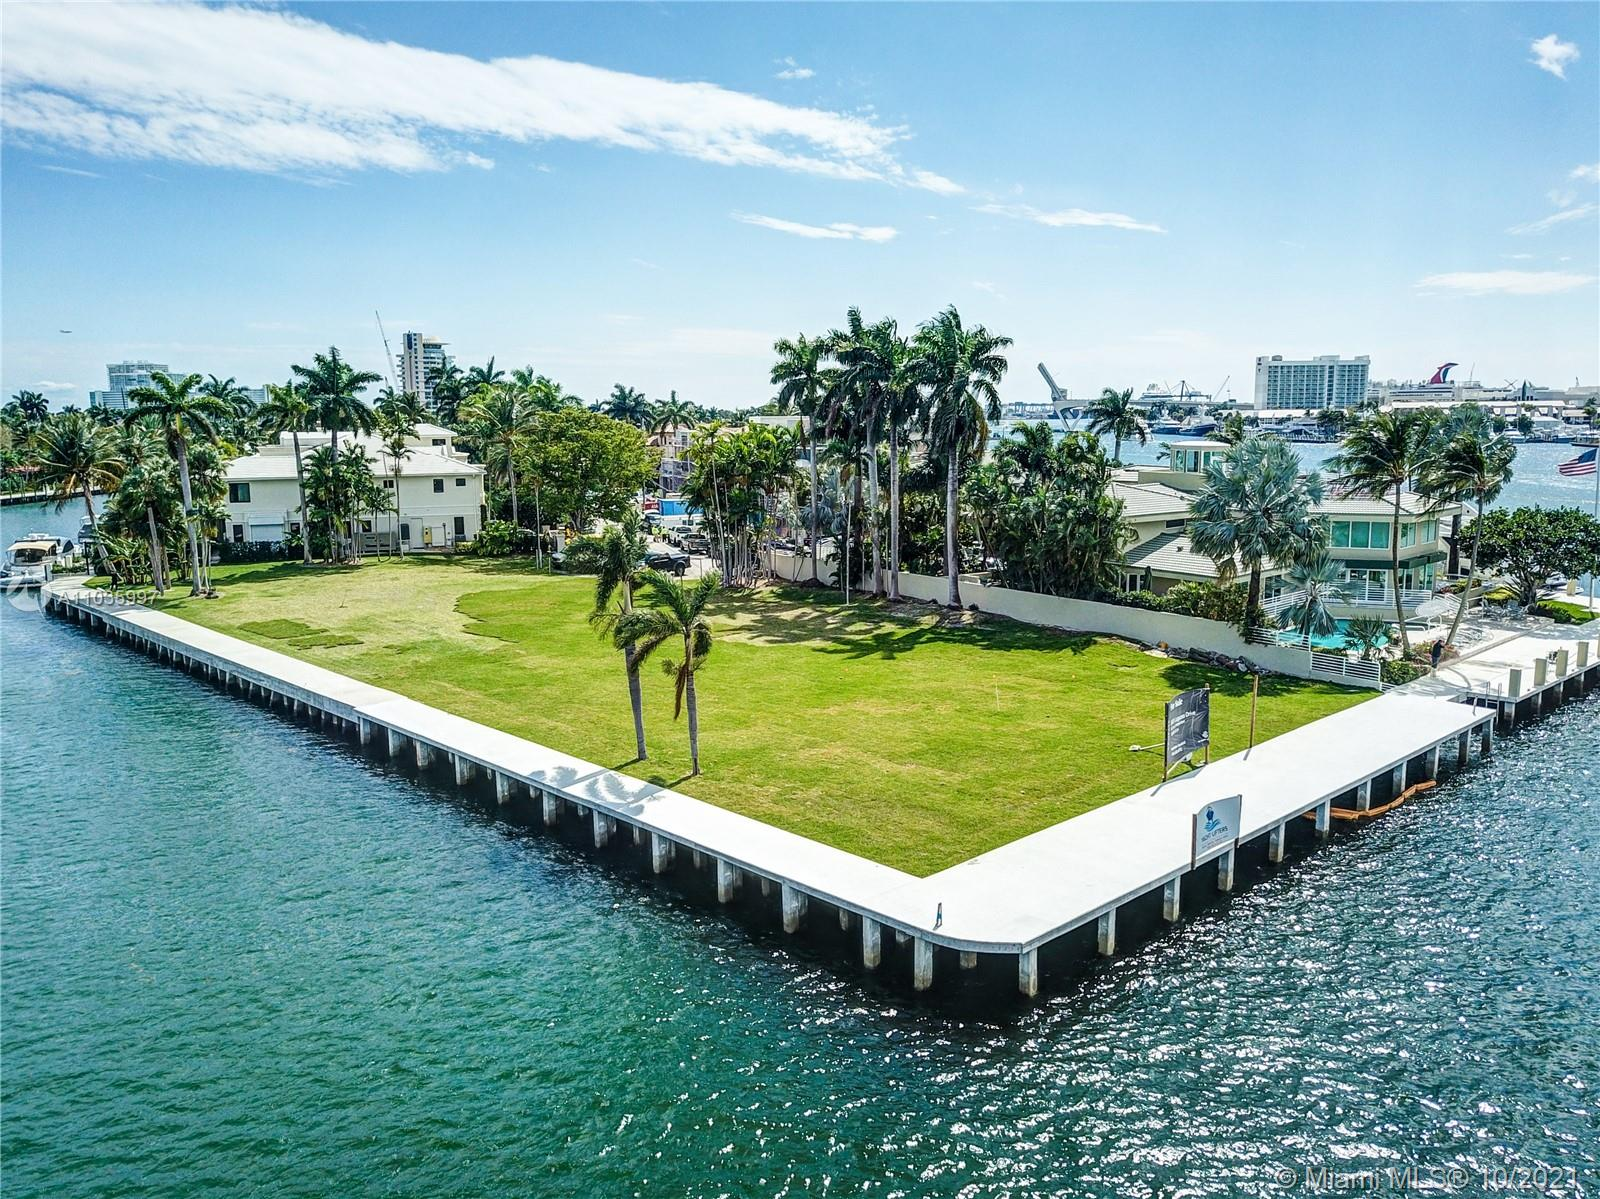 Spectacular Point lot where the intracoastal meets the New River offering panoramic open vistas. Boasting 390+ of water frontage, accommodating large and multi yacht dockage truly just minutes from the ocean. New Seawall and new Dock. Unobstructed views extend far and wide toward the long westward expanse up the New River to downtown Ft Lauderdale. Residents of gated Harbor Beach also have access to the private oceanfront beach club. This oversized lot (29,823 sq ft) located on a very quiet street is ready for a new home. Surrounding homes are in the 19M-25M range so you can easily build a dream home starting with this magnificent piece of property.